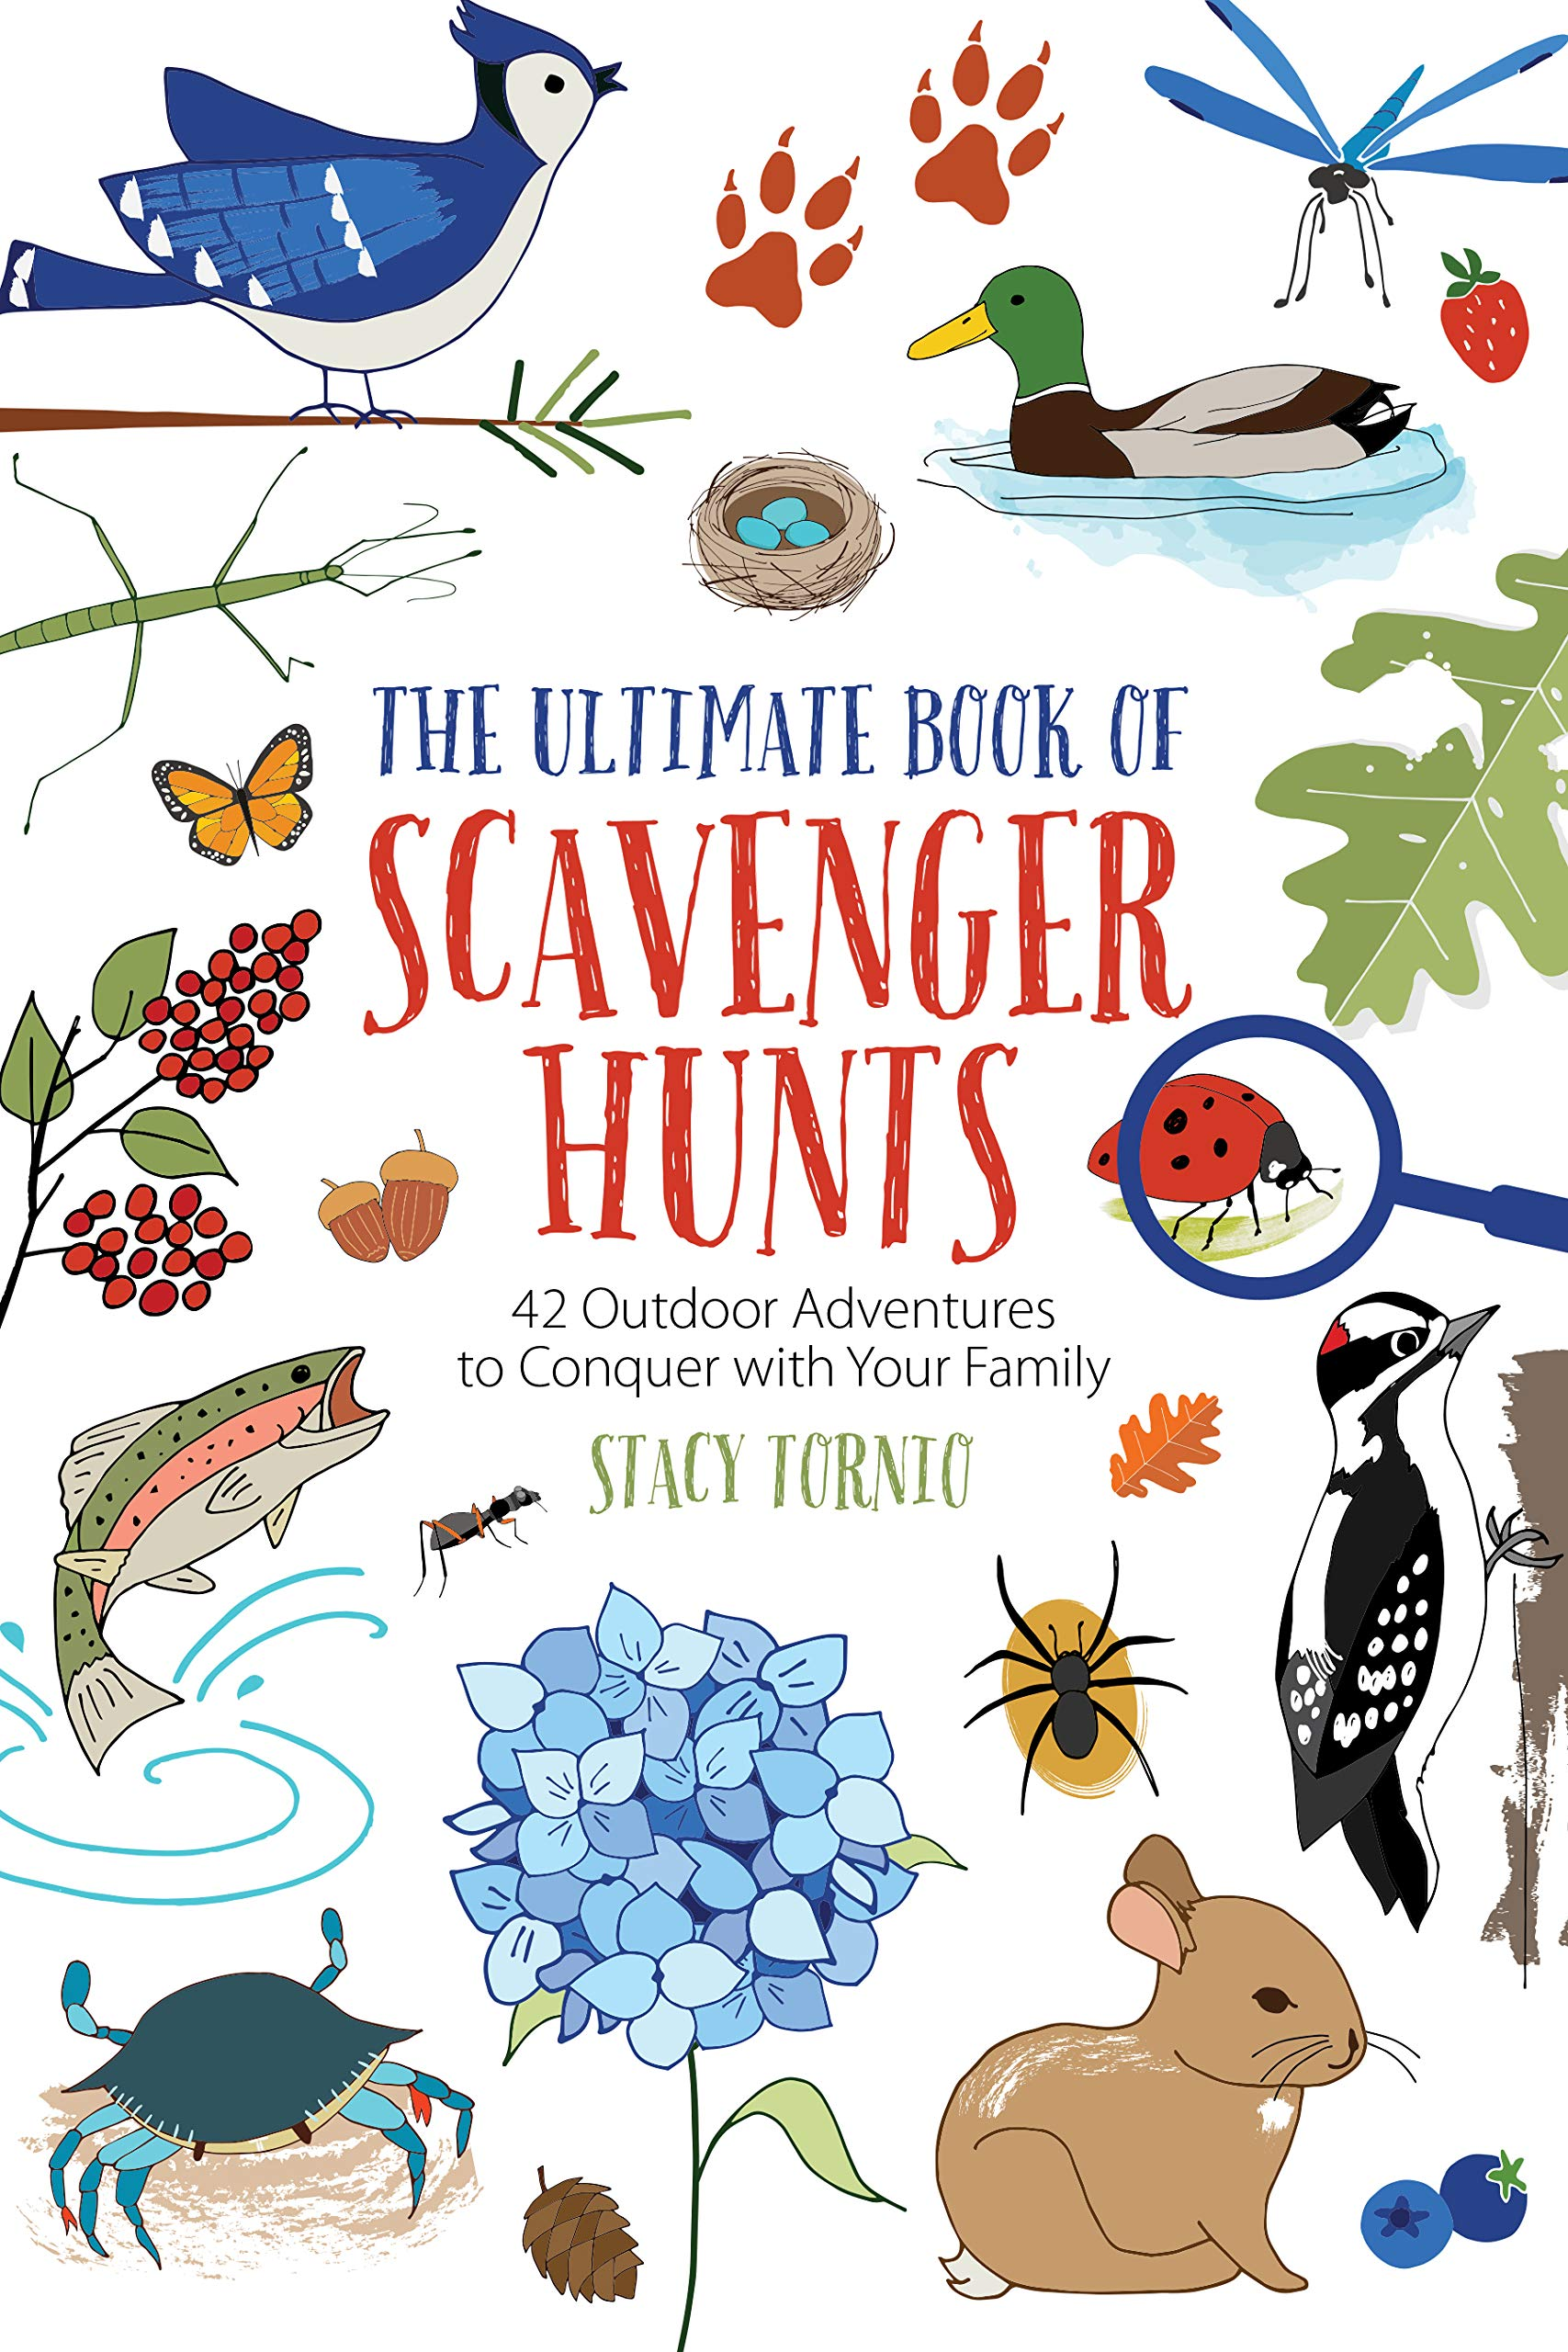 The Ultimate Book Of Scavenger Hunts 42 Outdoor Adventures To Conquer With Your Family Tornio Stacy 9781493051533 Amazon Com Books